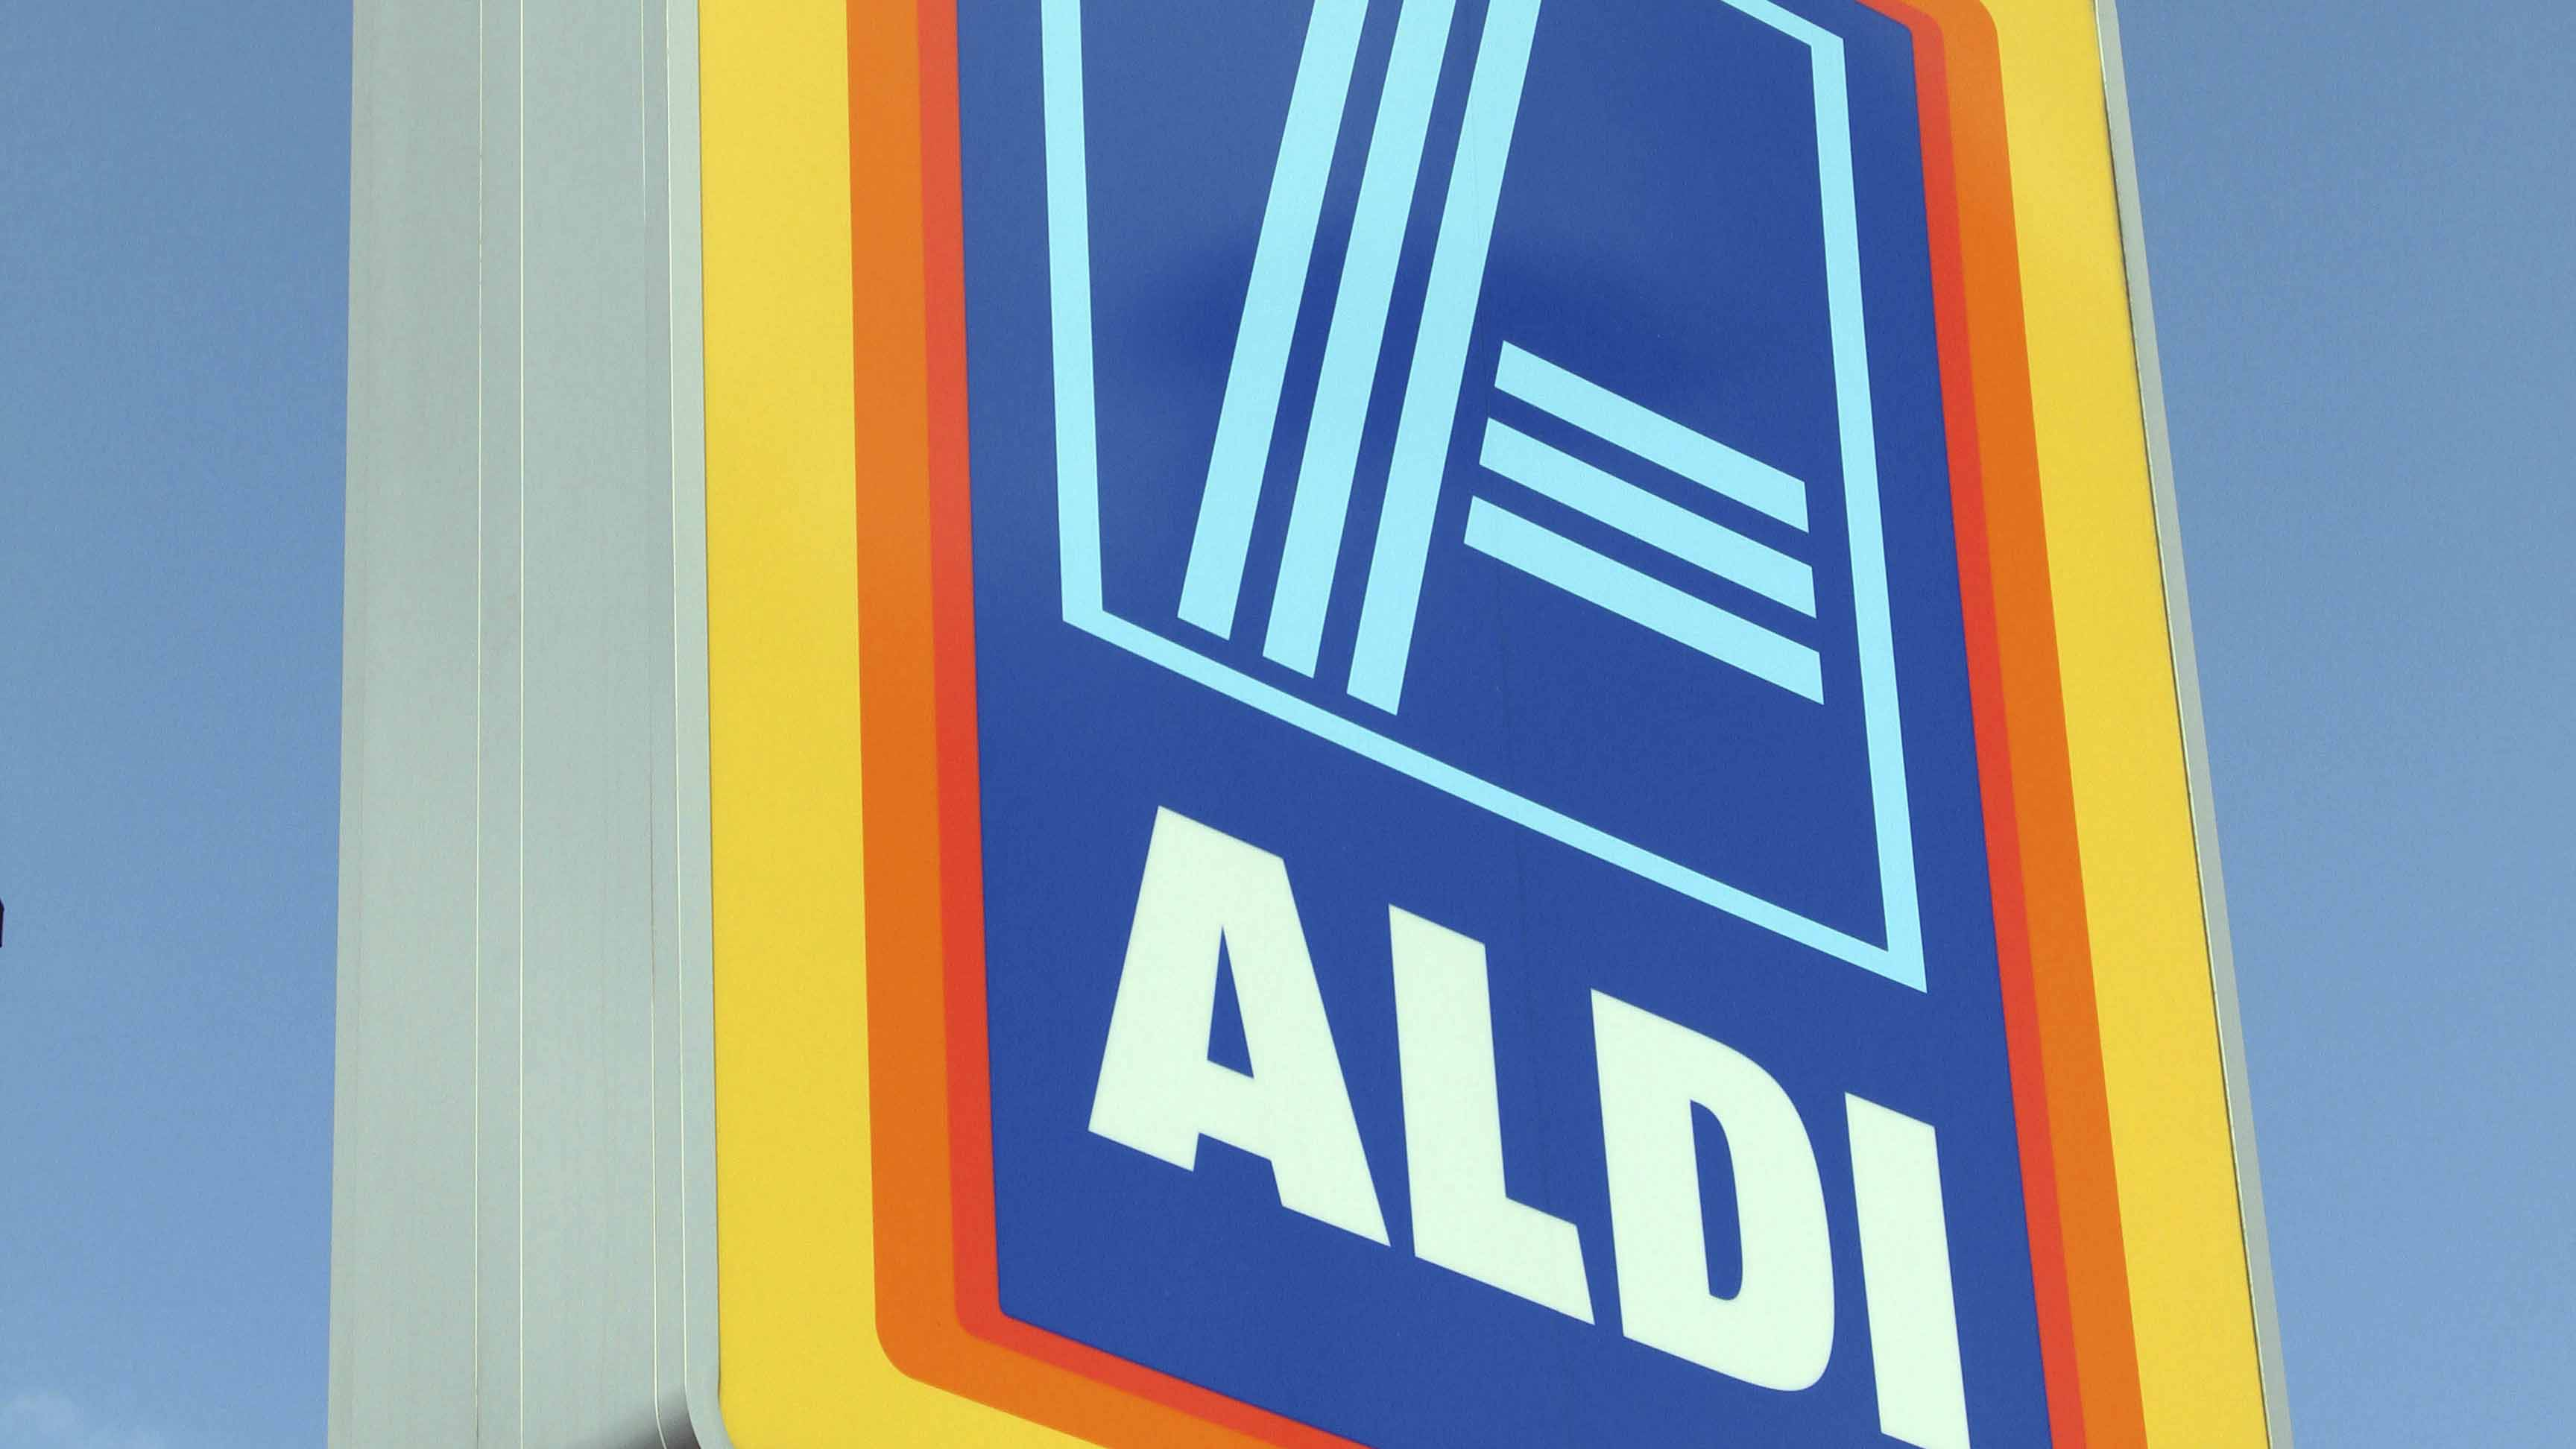 Aldi tops GCA survey but payment delays still an issue for some